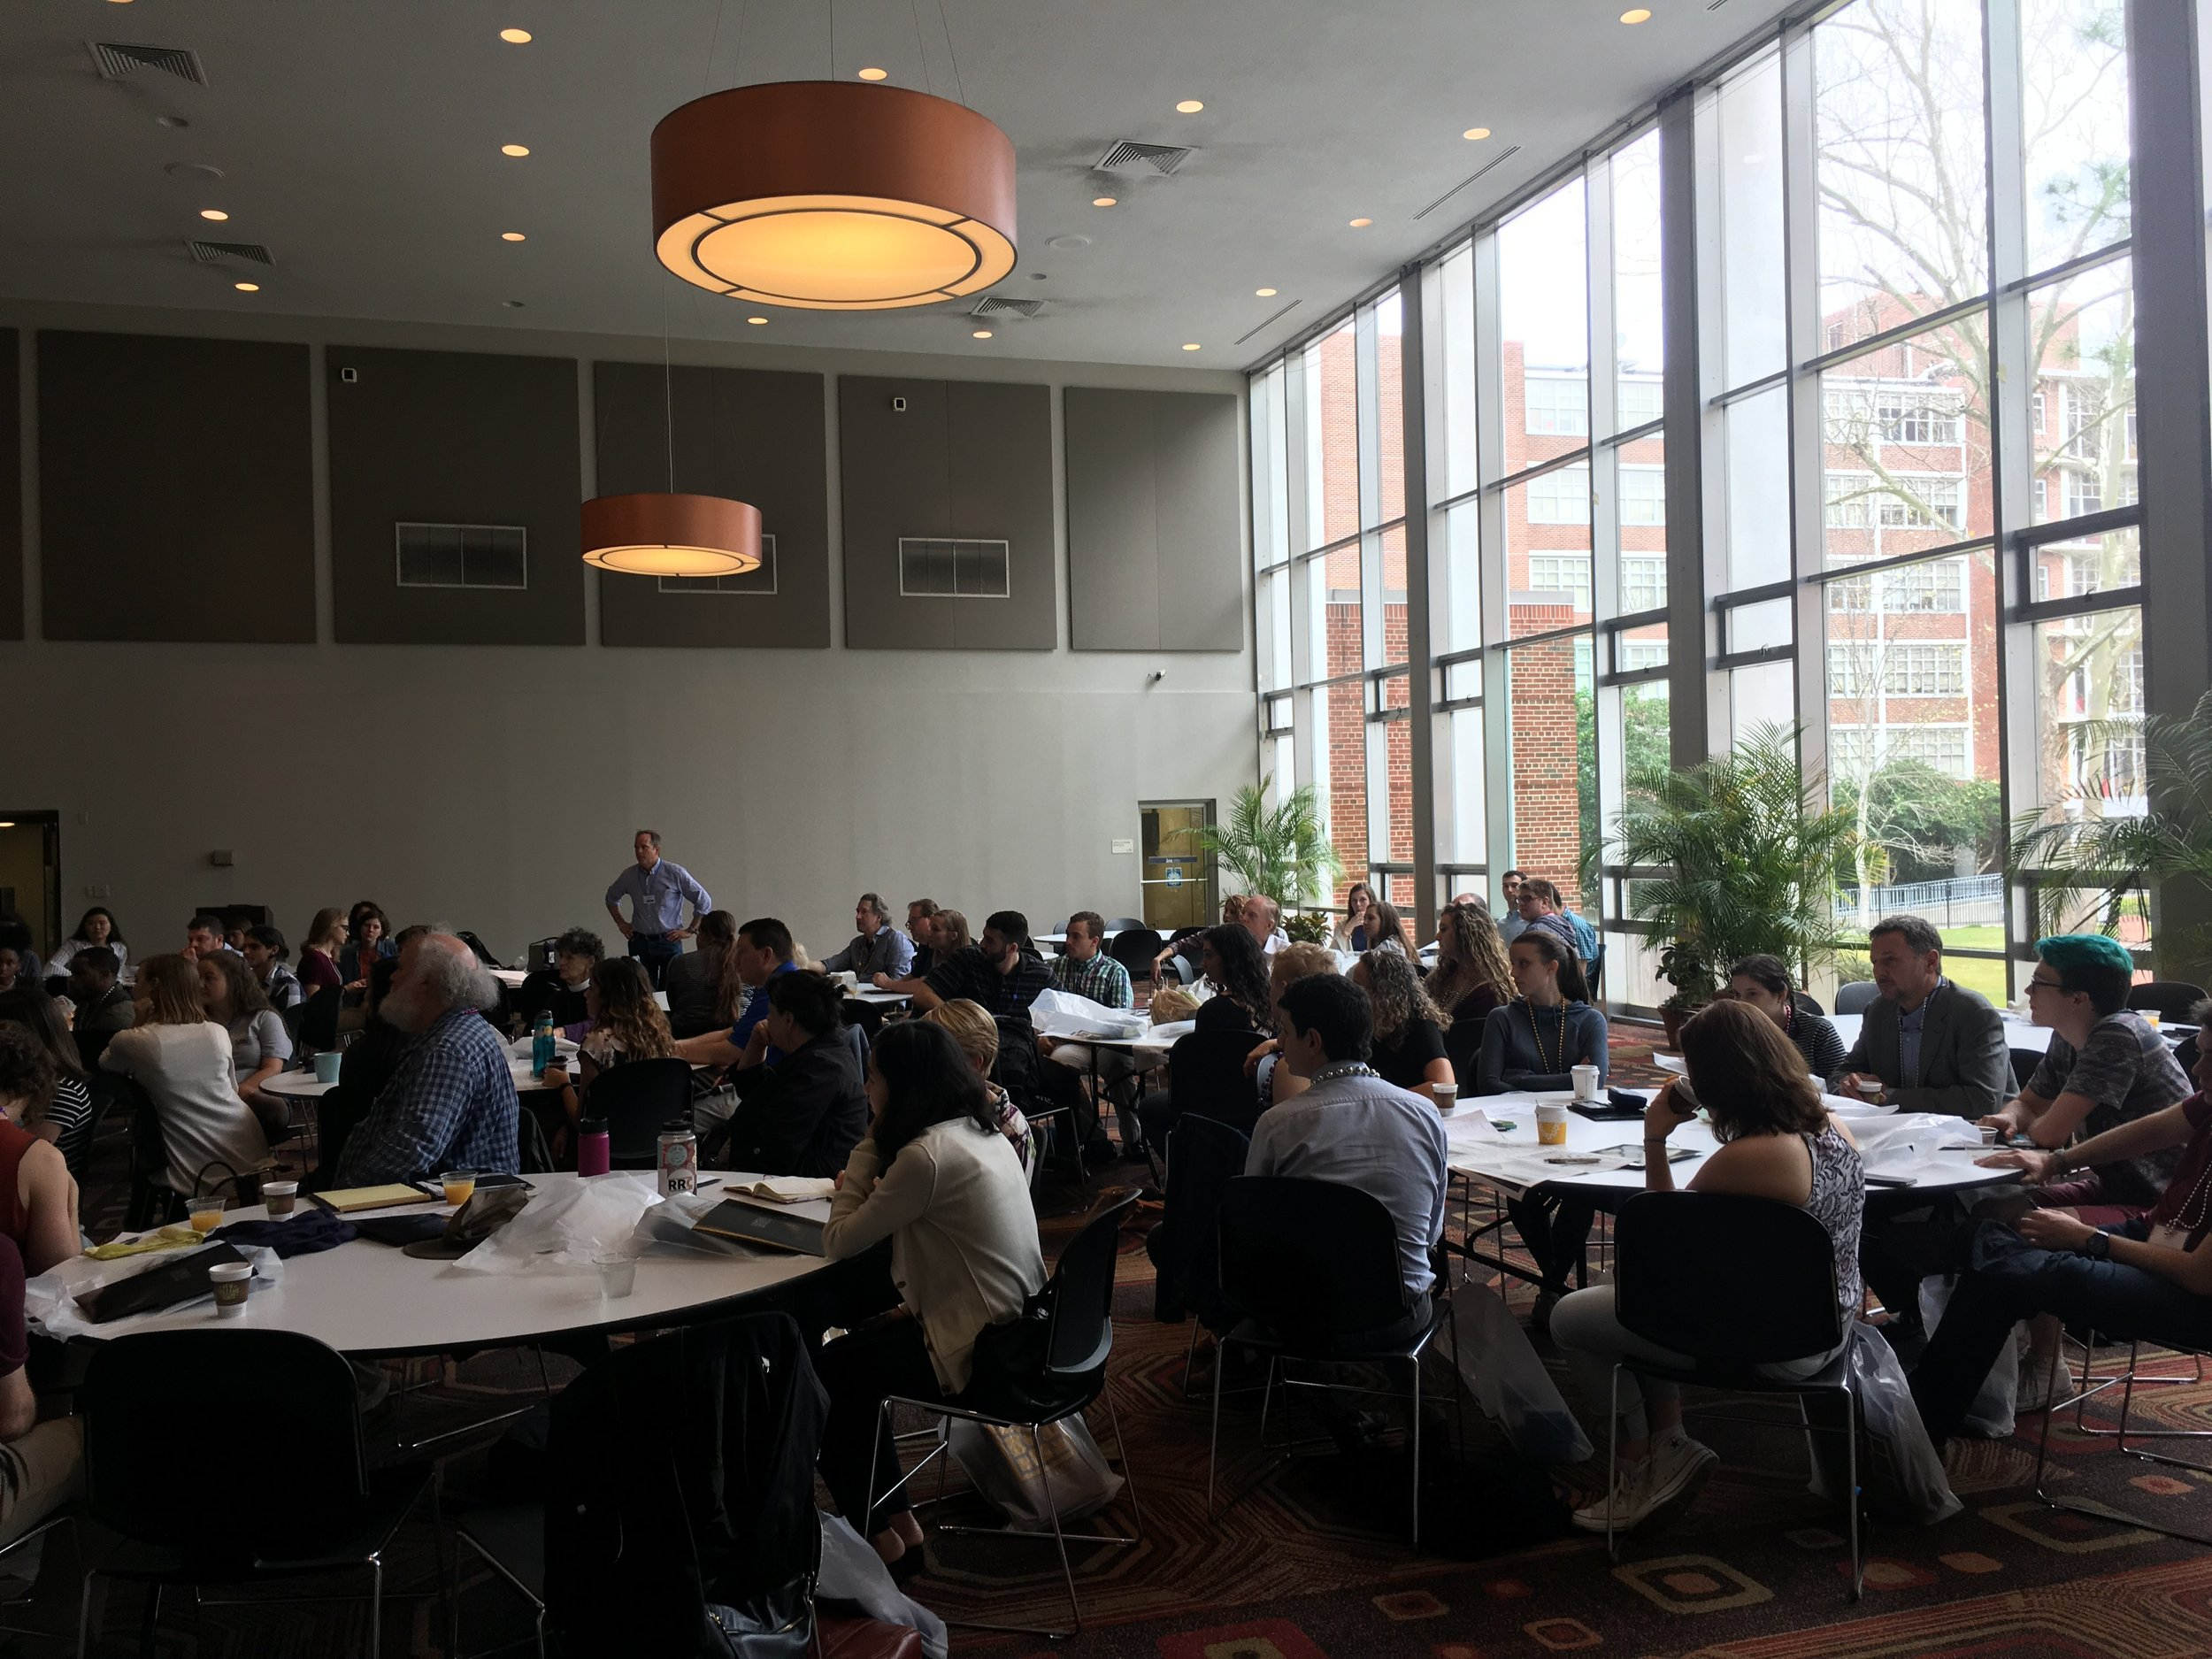 70 students and staff from 17 Jesuit institutions attended the 2017 AJCU Honors Conference at Loyola University New Orleans.